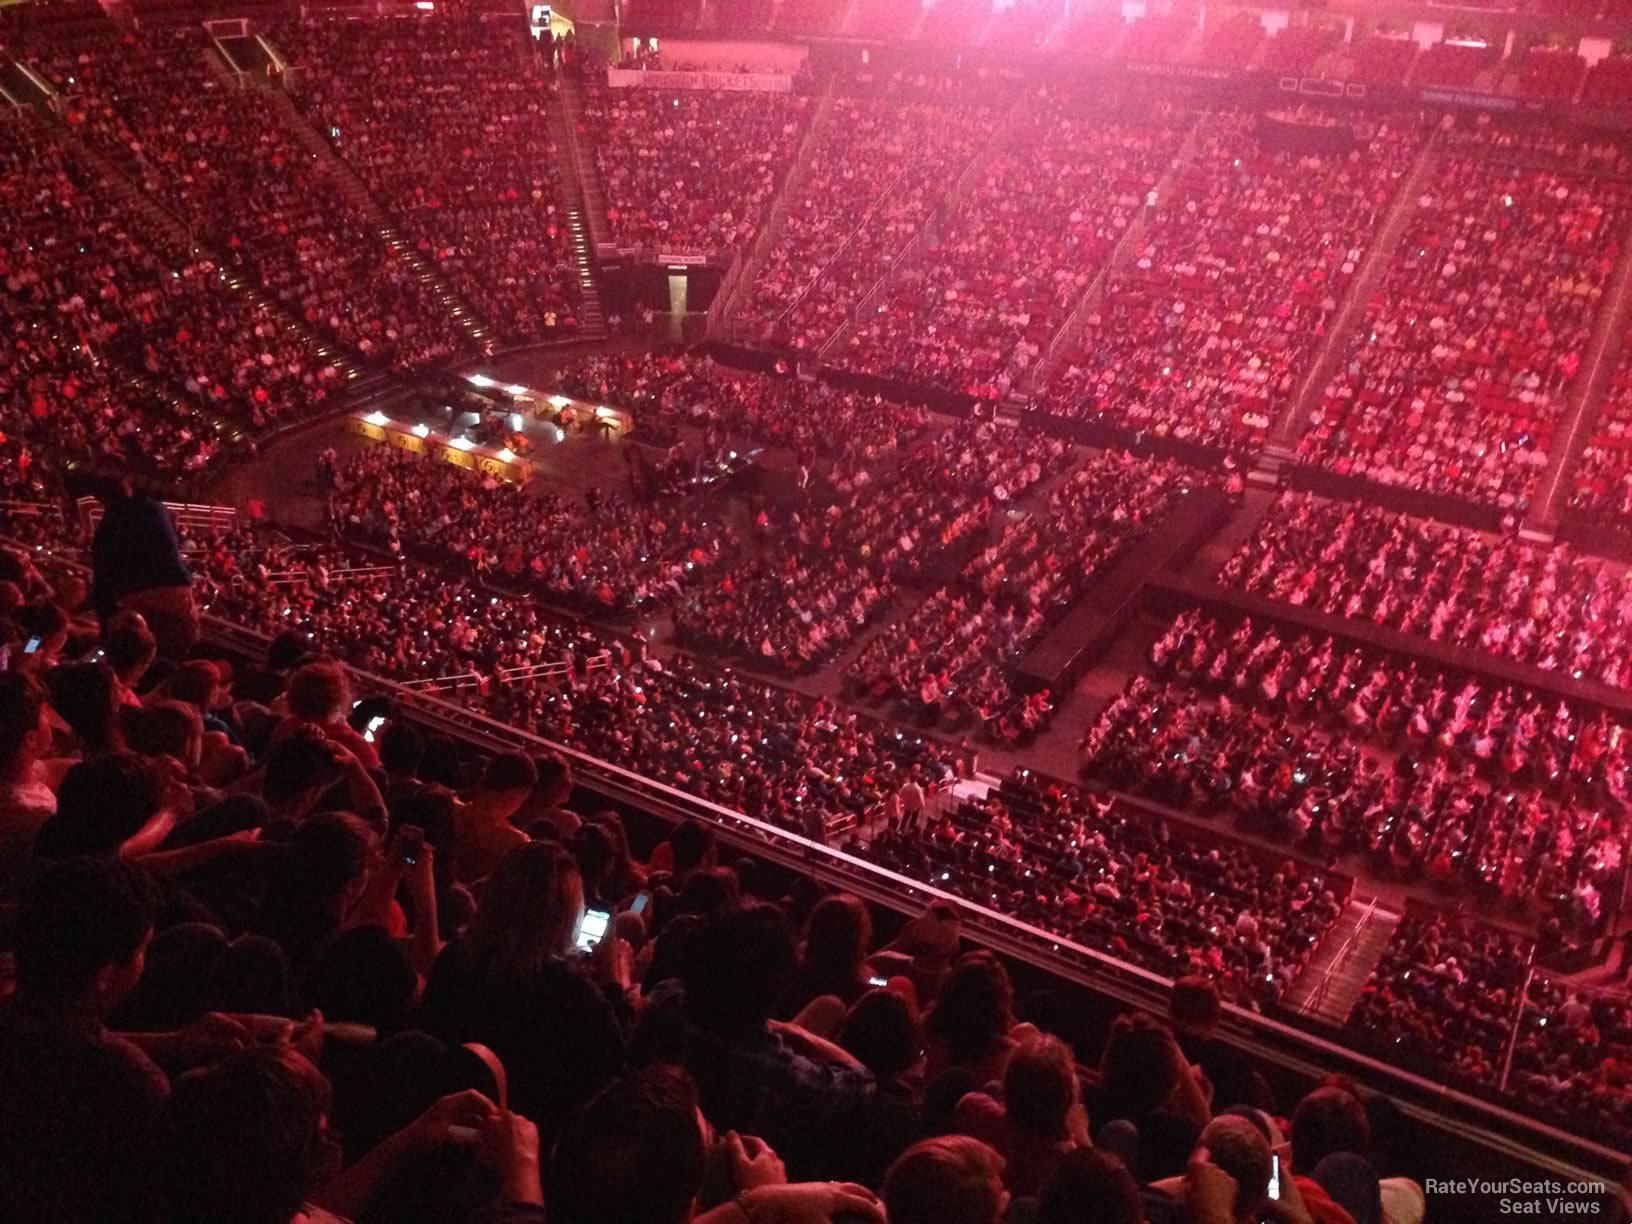 Toyota Center Section 408 Concert Seating Rateyourseats Com